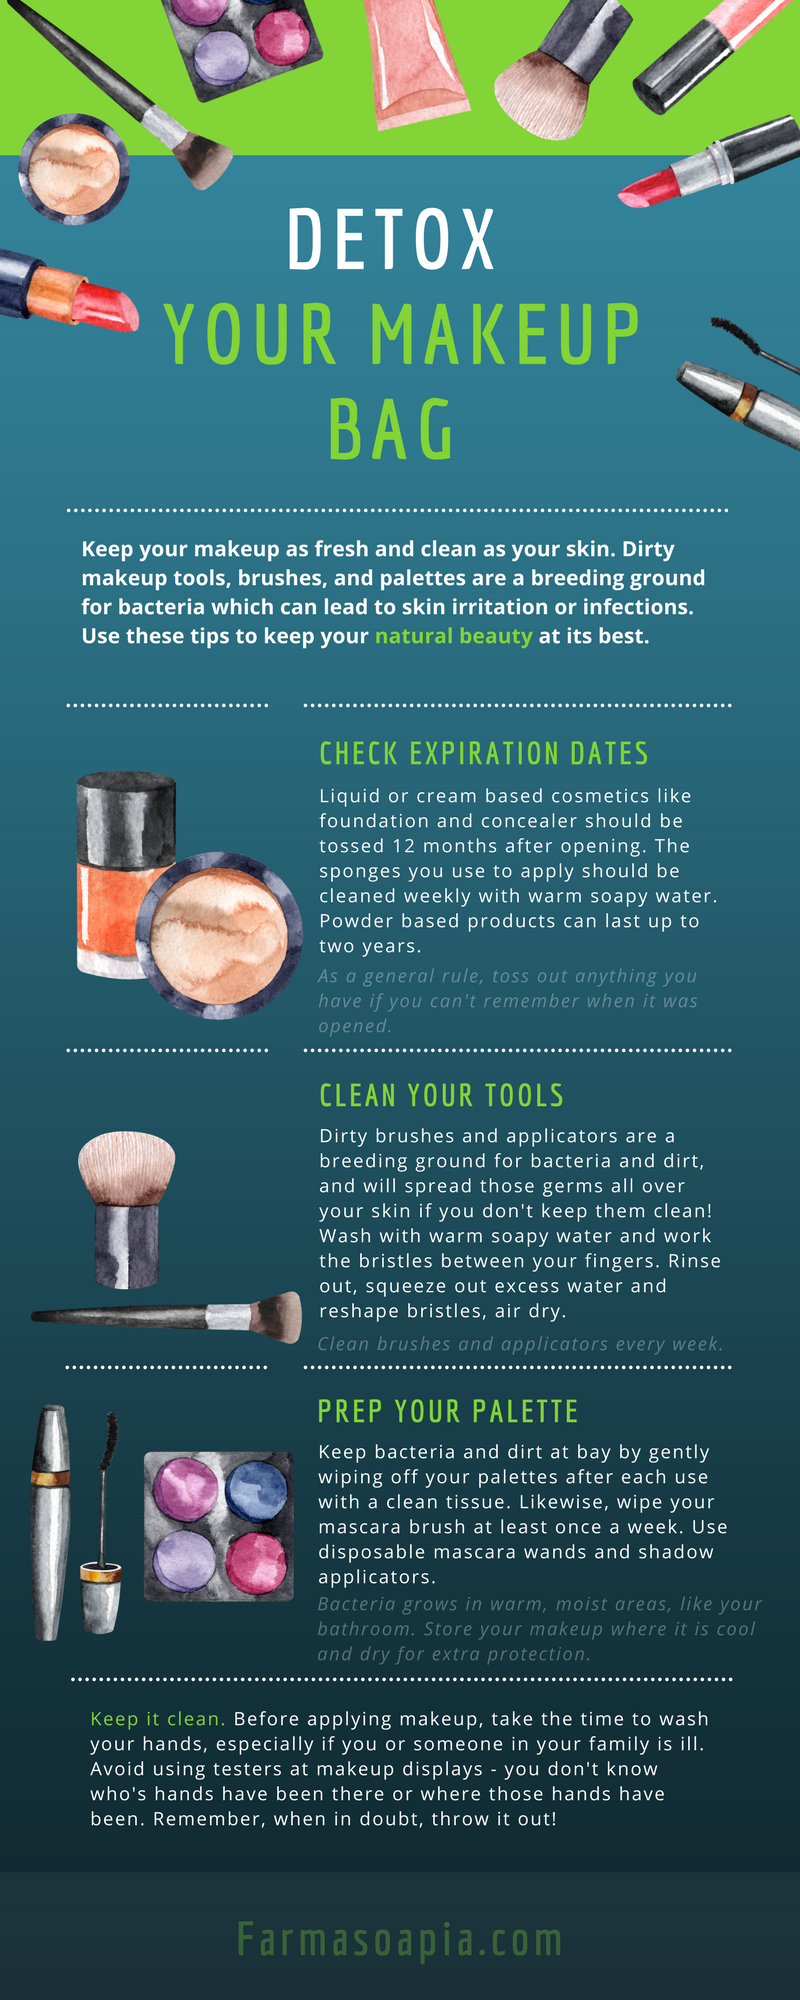 how to detox your makeup